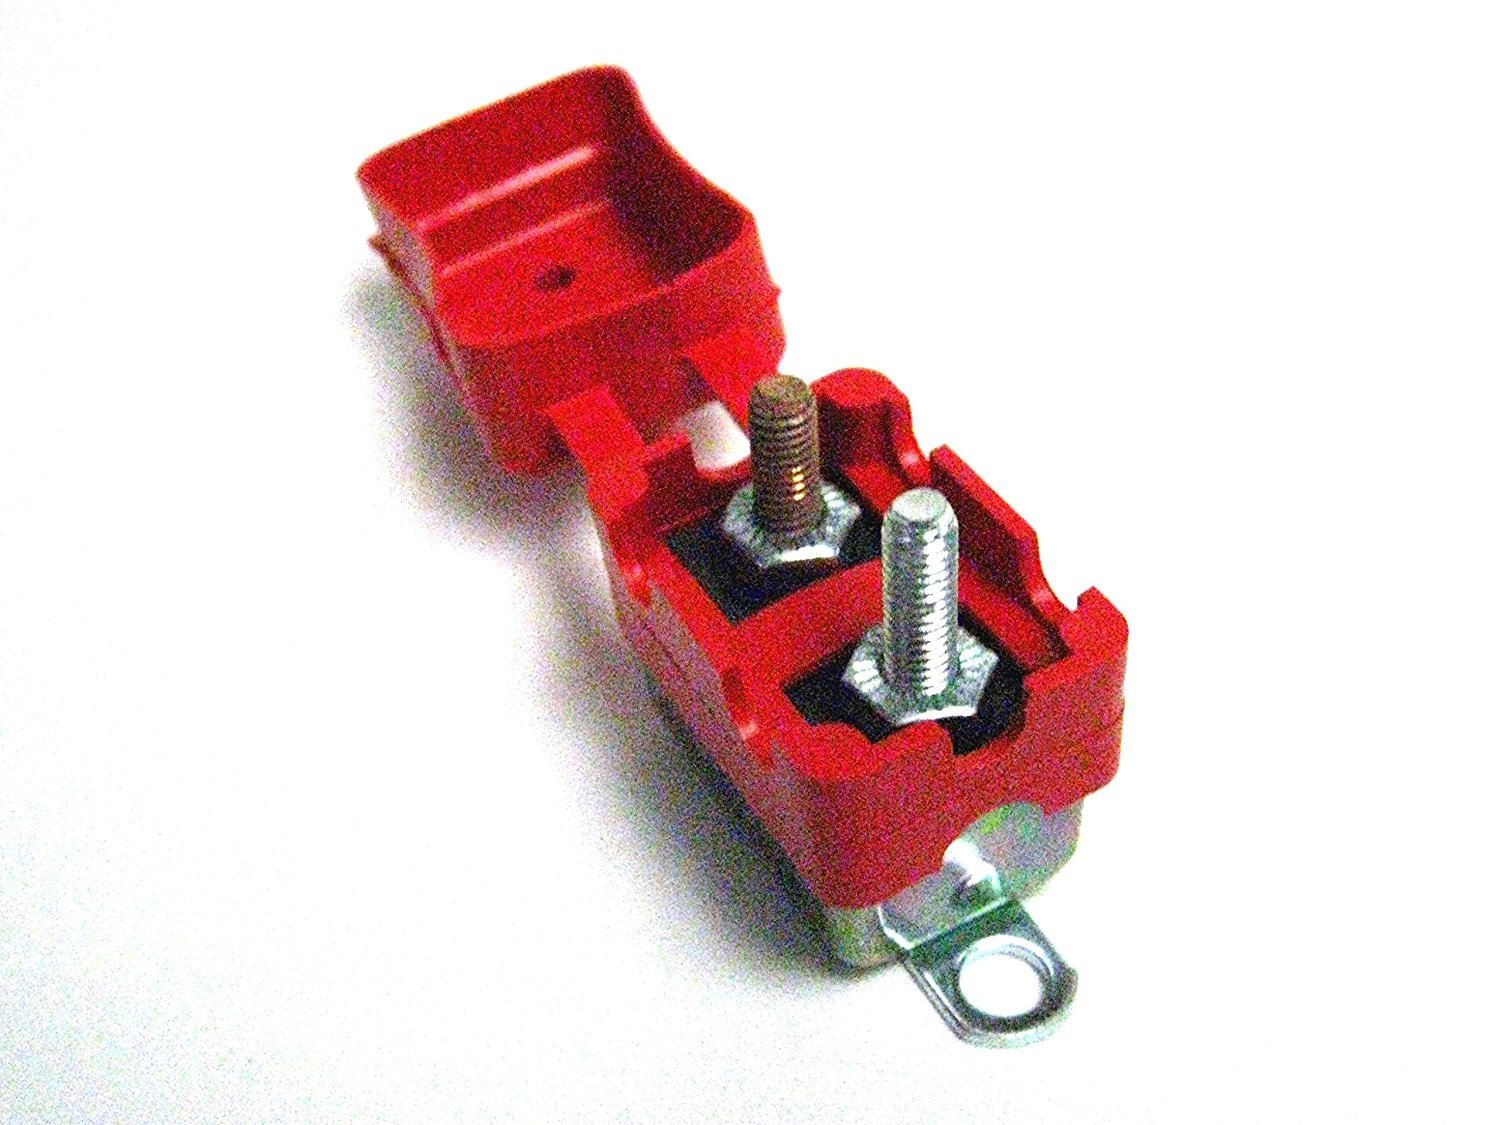 Vulcan Shortstop Circuit Breaker 25 AMP 12V Automatic Reset with Protective Red Boot Vulcan Auto Components CECOMINOD023704